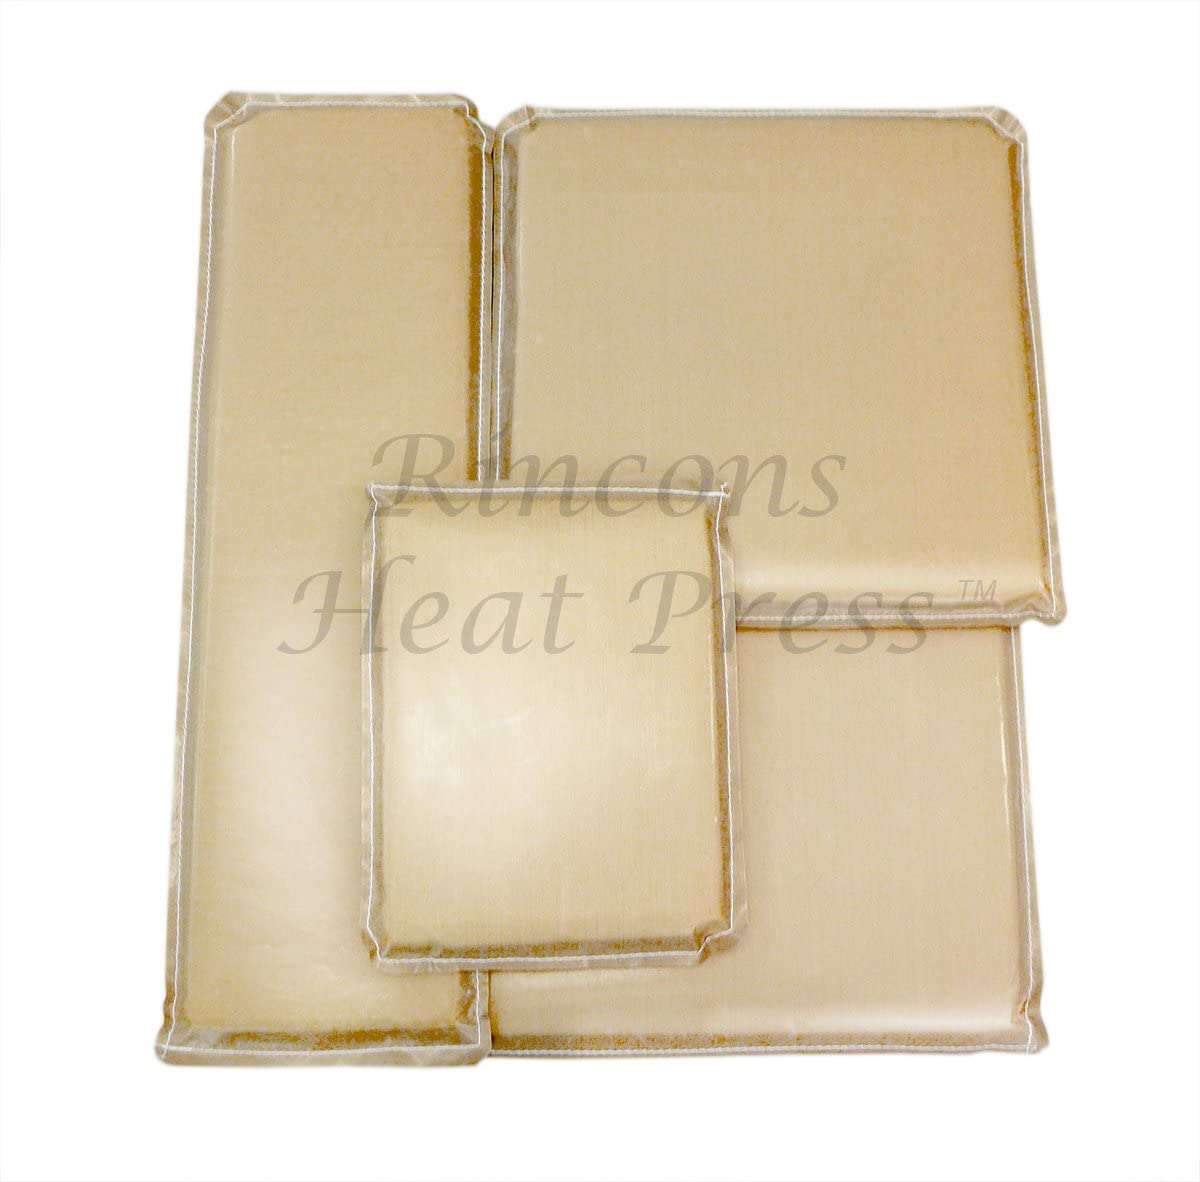 Teflon Heat Resistant Pressing Pillows for Screen Print and Heat Pressing Shirts 6x6